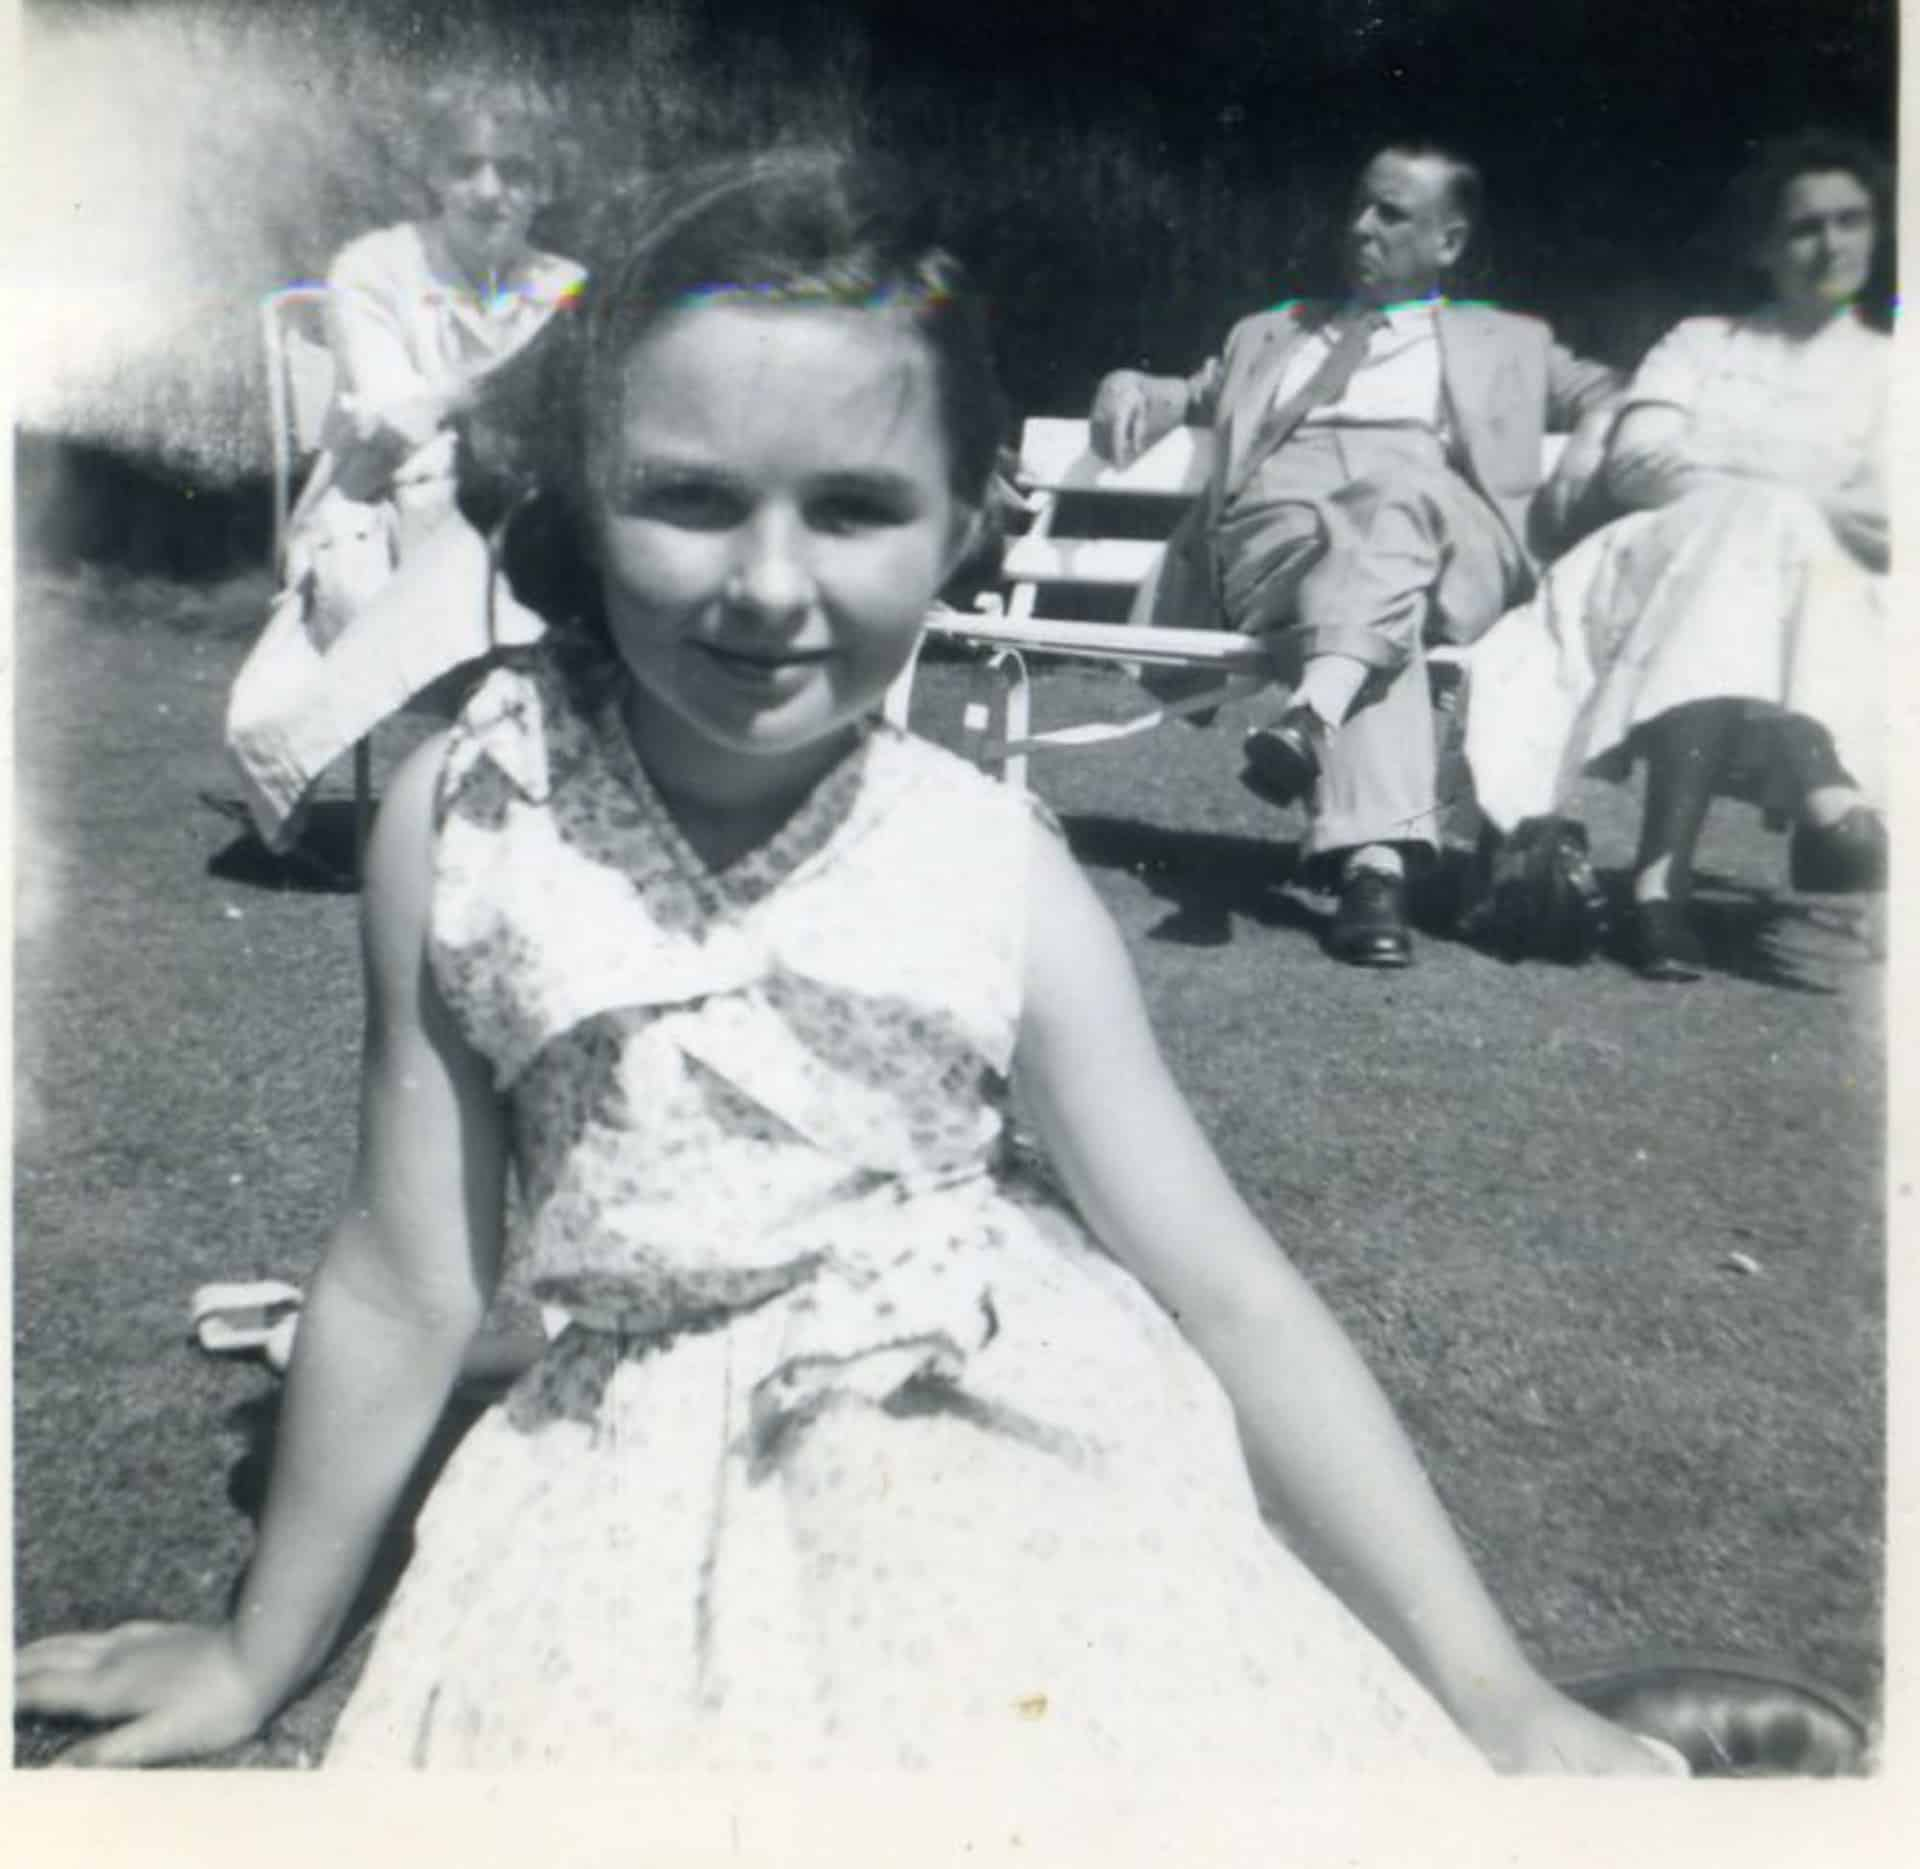 Jenny Potts with her parents in the background, 1952